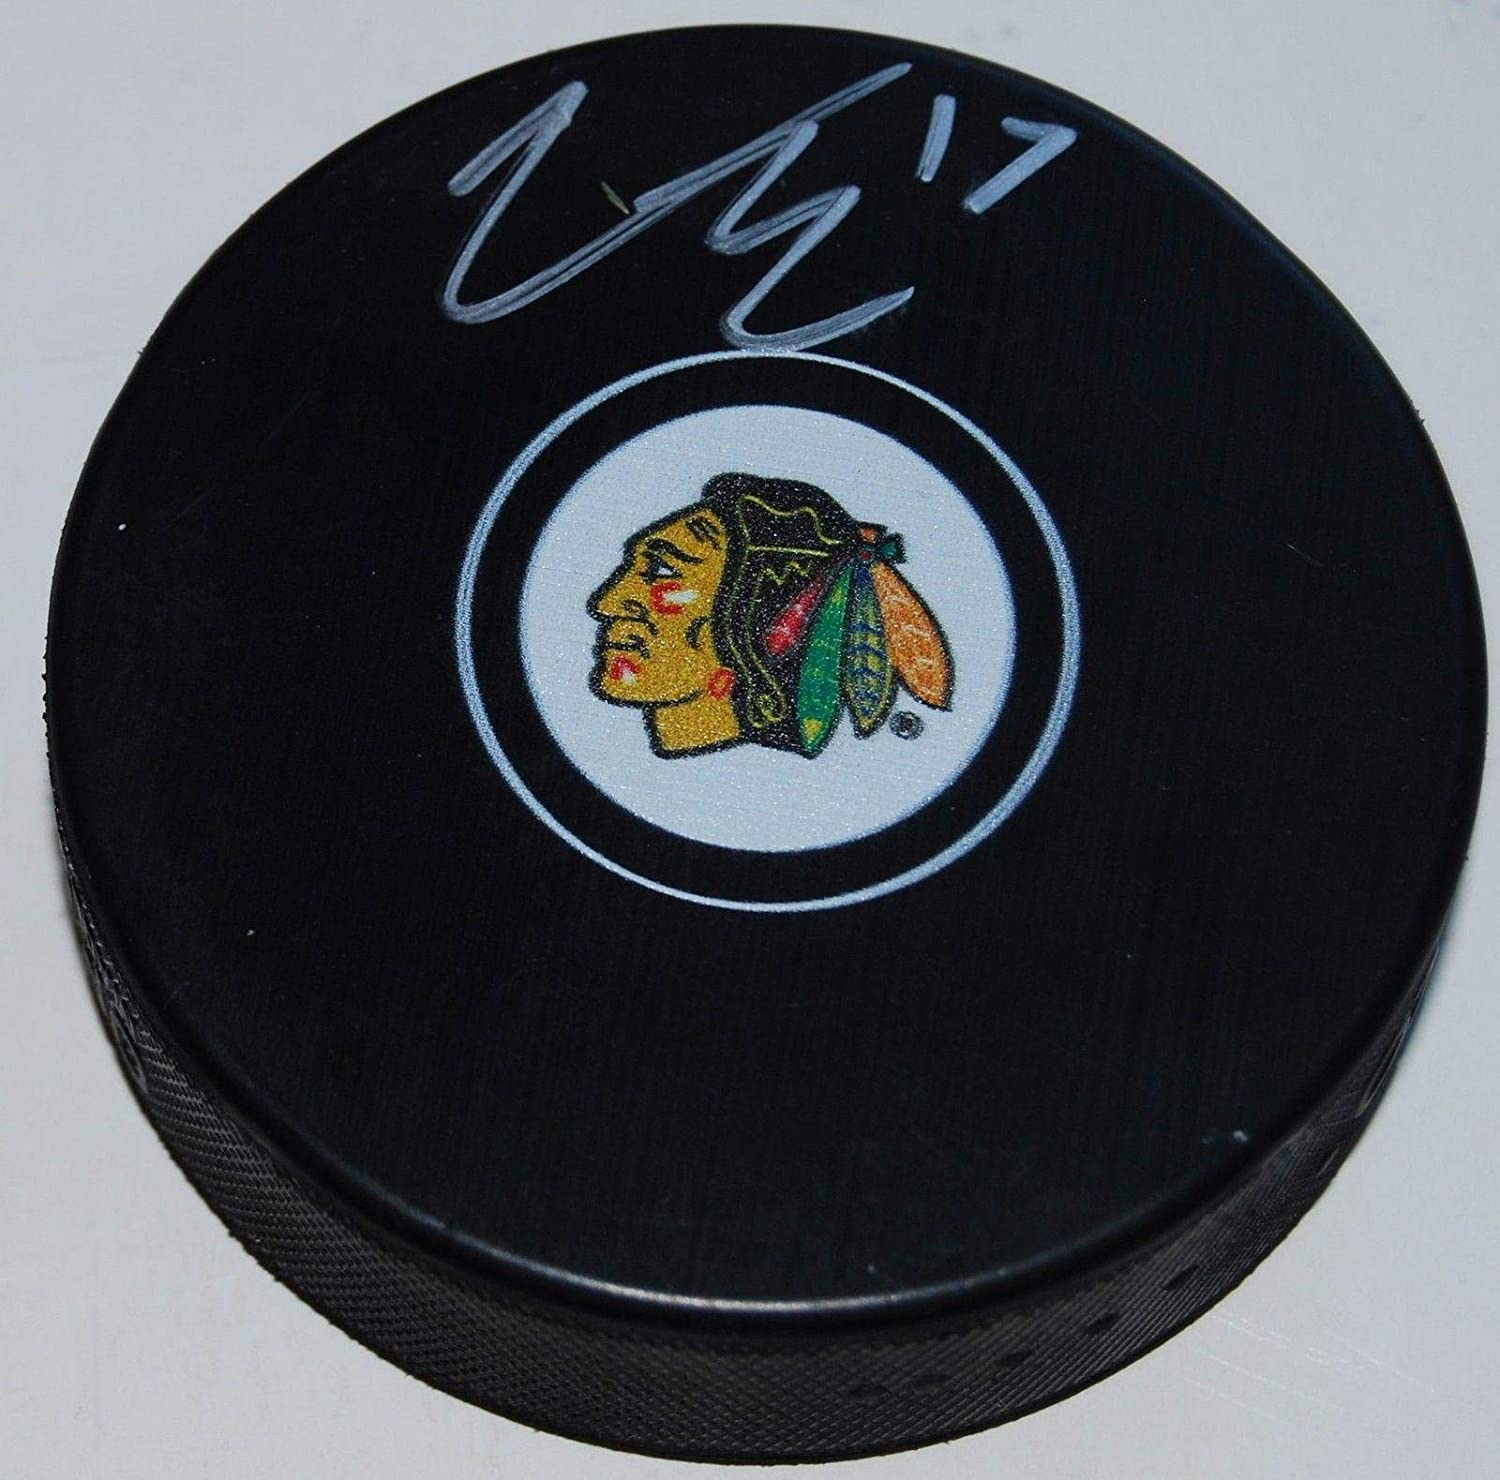 Victor Ejdsell Signed Puck - souvenir logo W COA - Autographed NHL Pucks